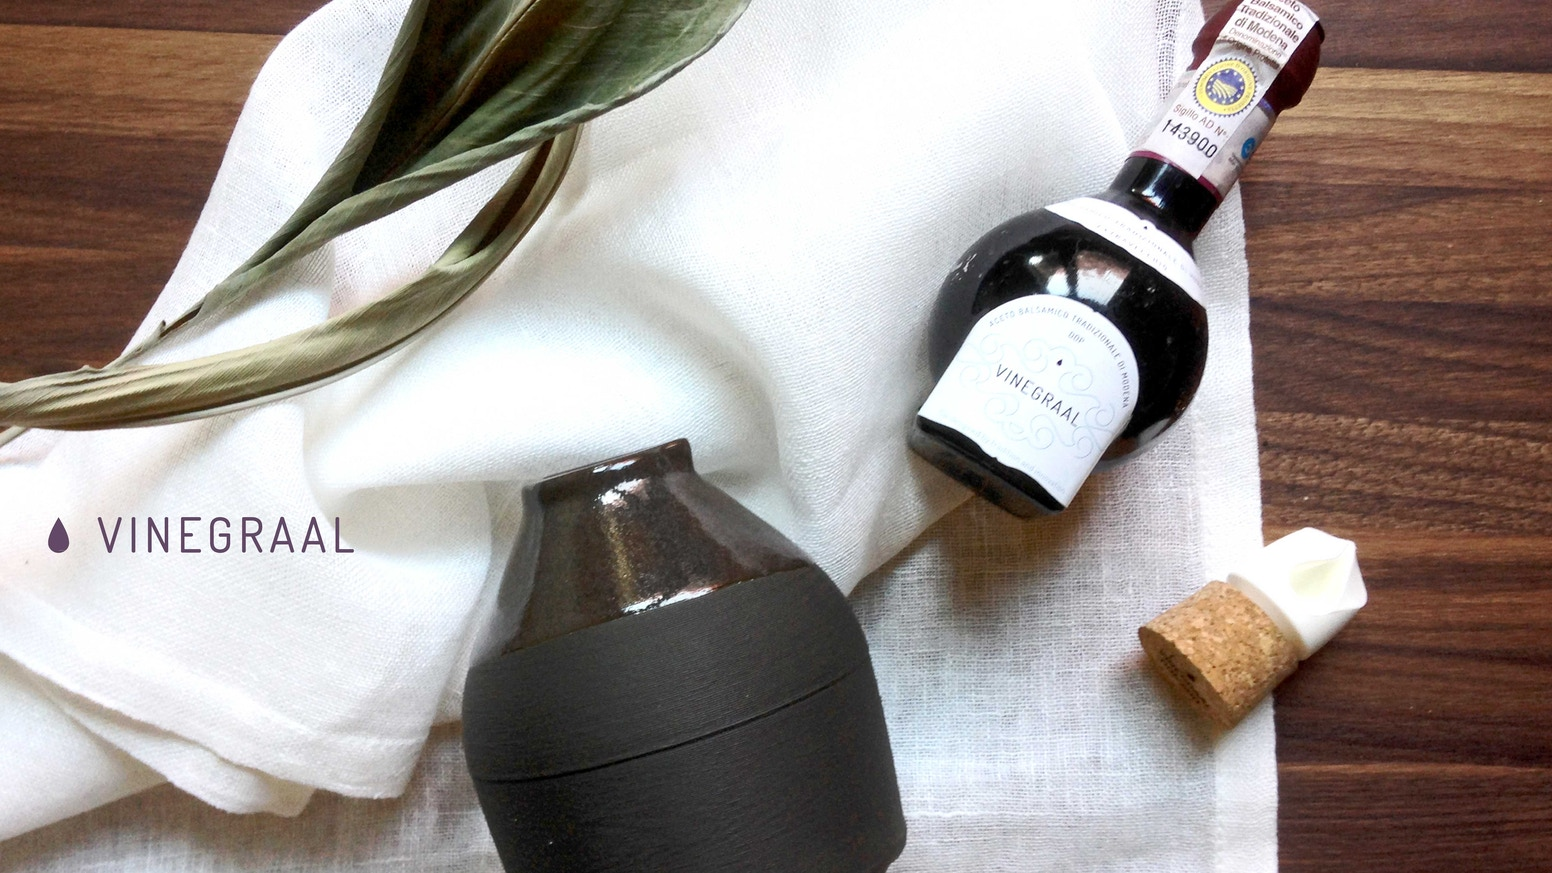 Vinegraal, a celebratory product marking the 50th anniversary of Consorteria Aceto Balsamico Tradizionale. Let's celebrate together!